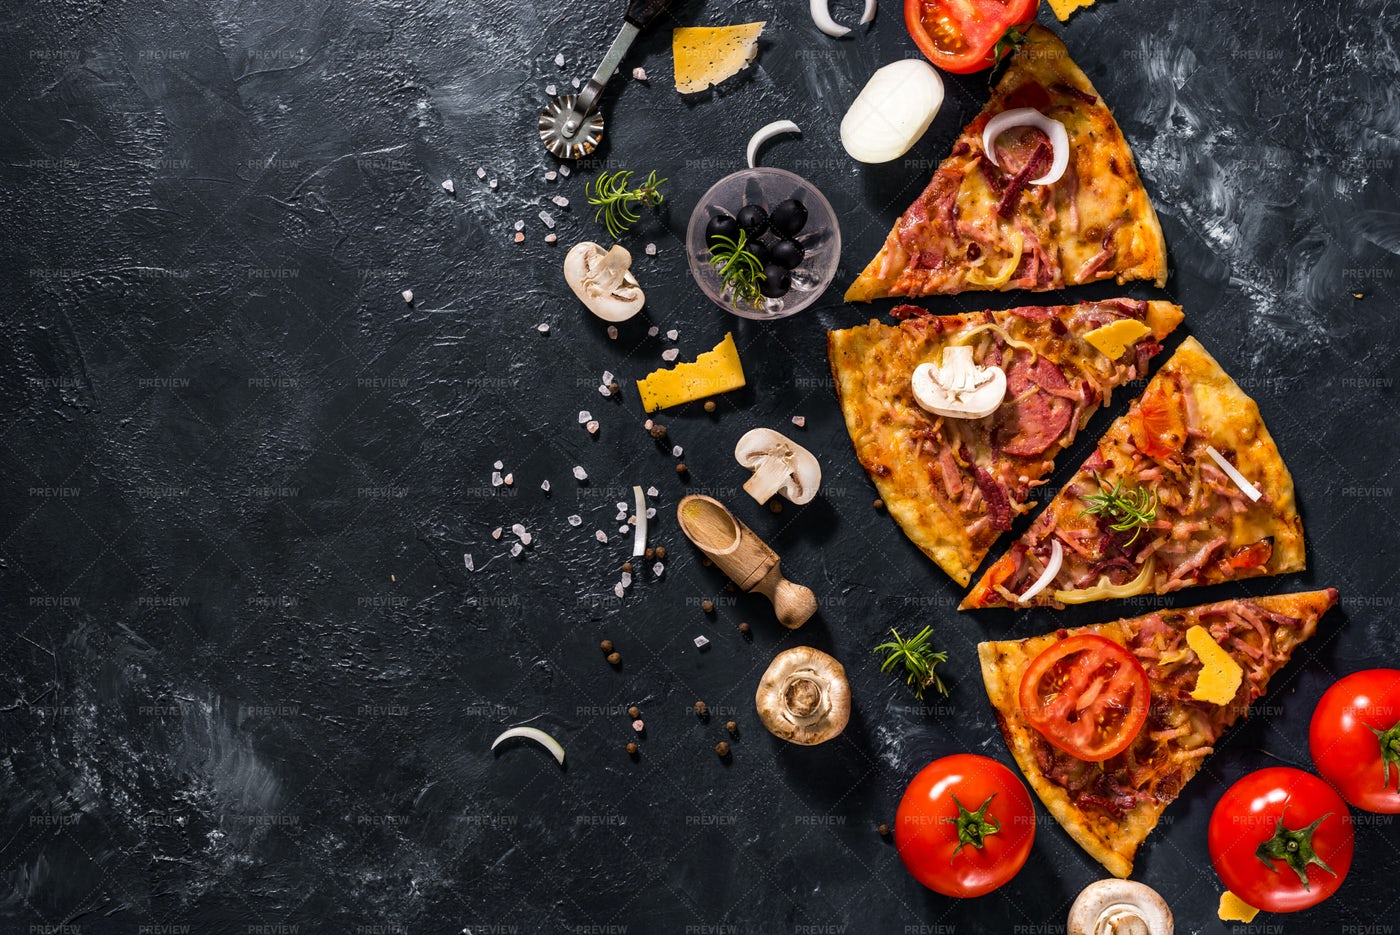 Pizza Slices And Ingredients: Stock Photos